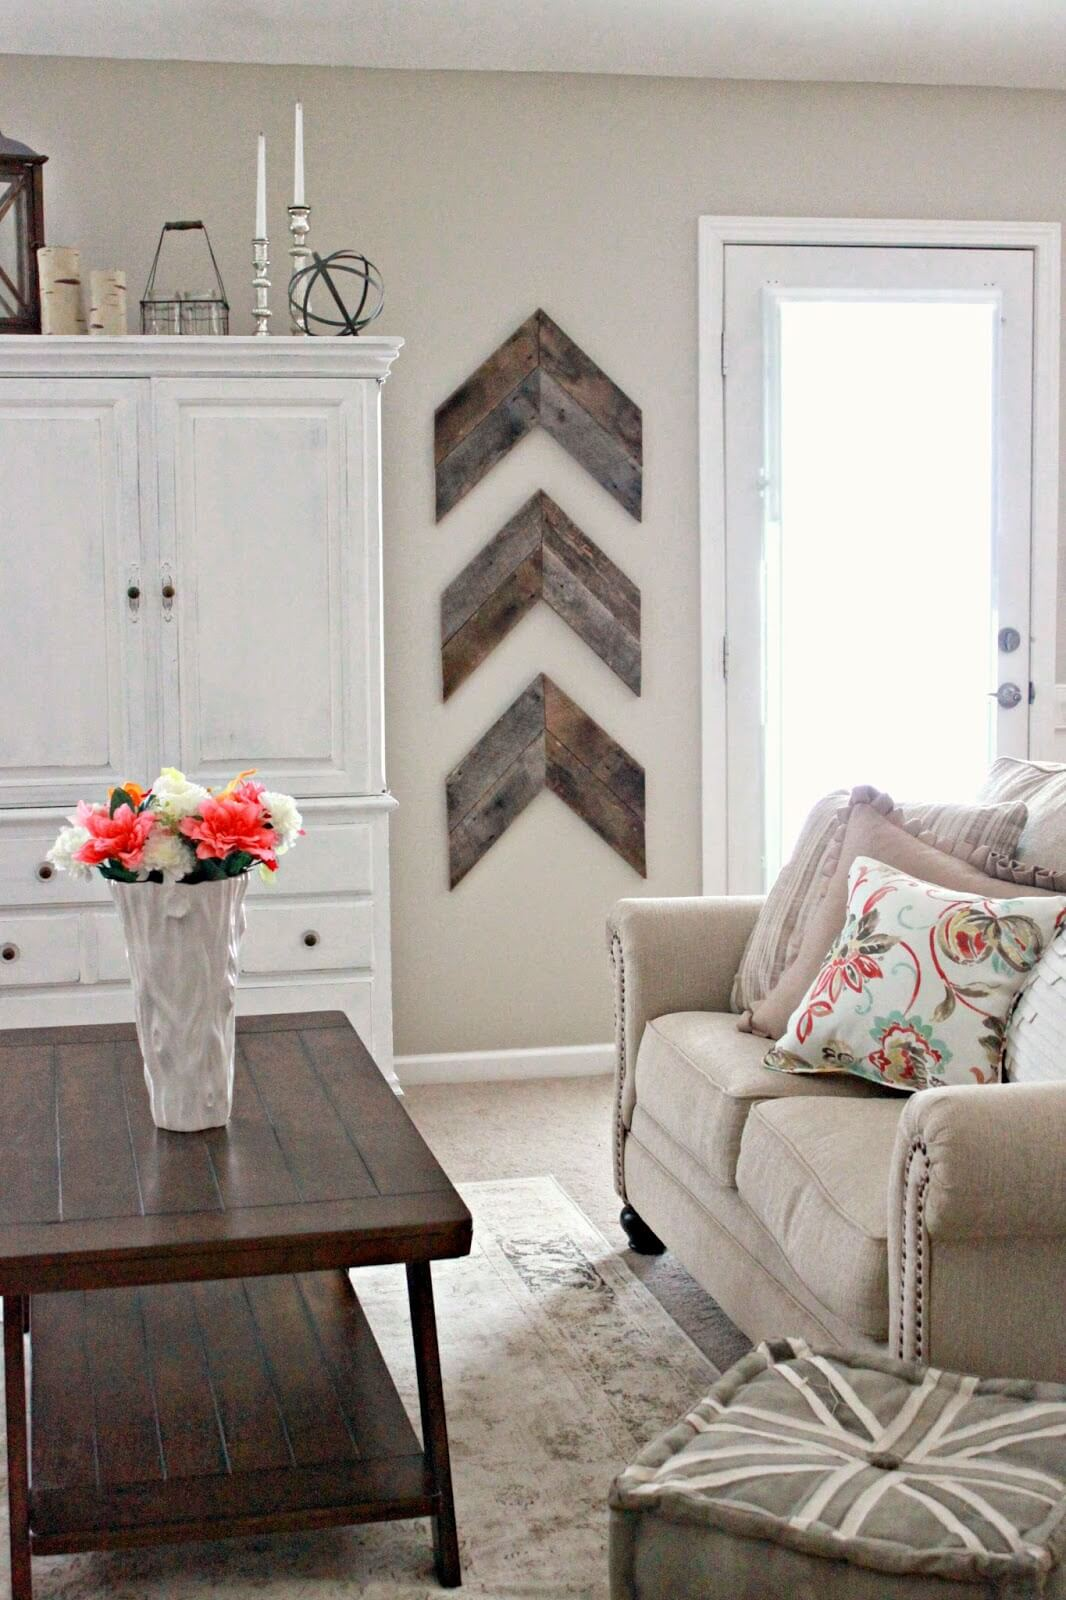 4. Barnwood Chevron Accent Wall Decor